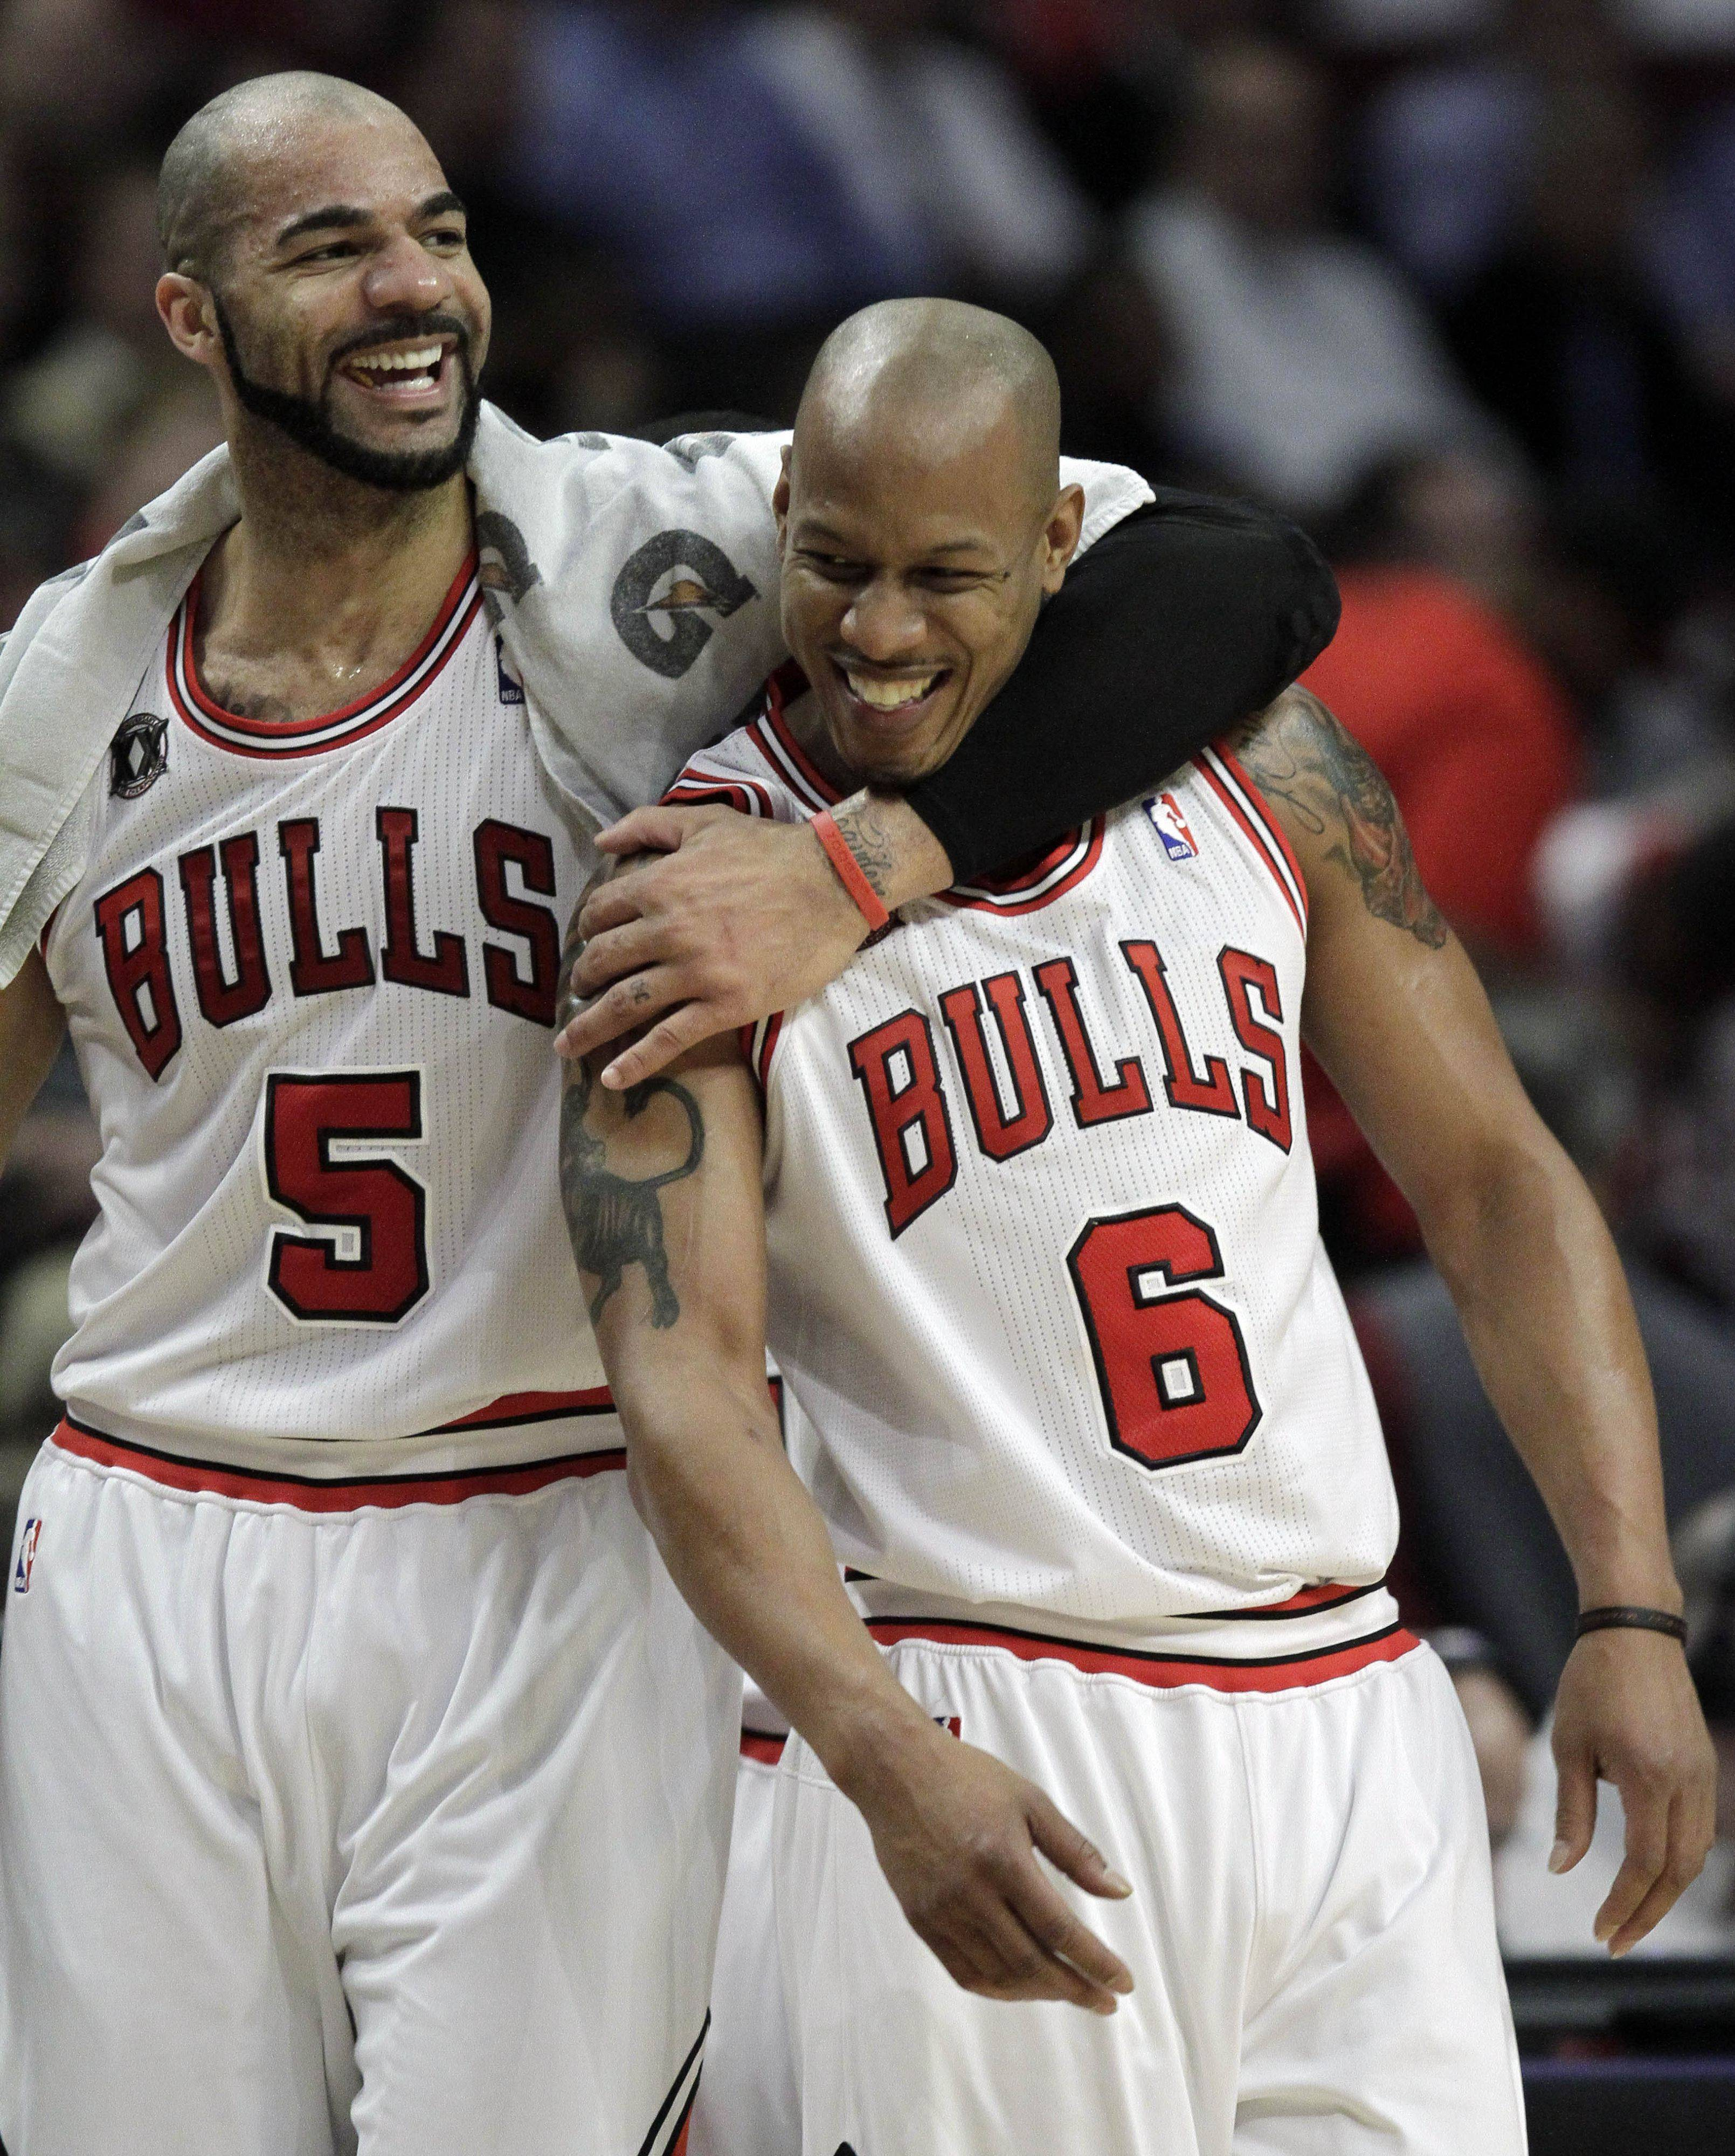 Carlos Boozer, left, and Keith Bogans smile during the first quarter Wednesday in Chicago.